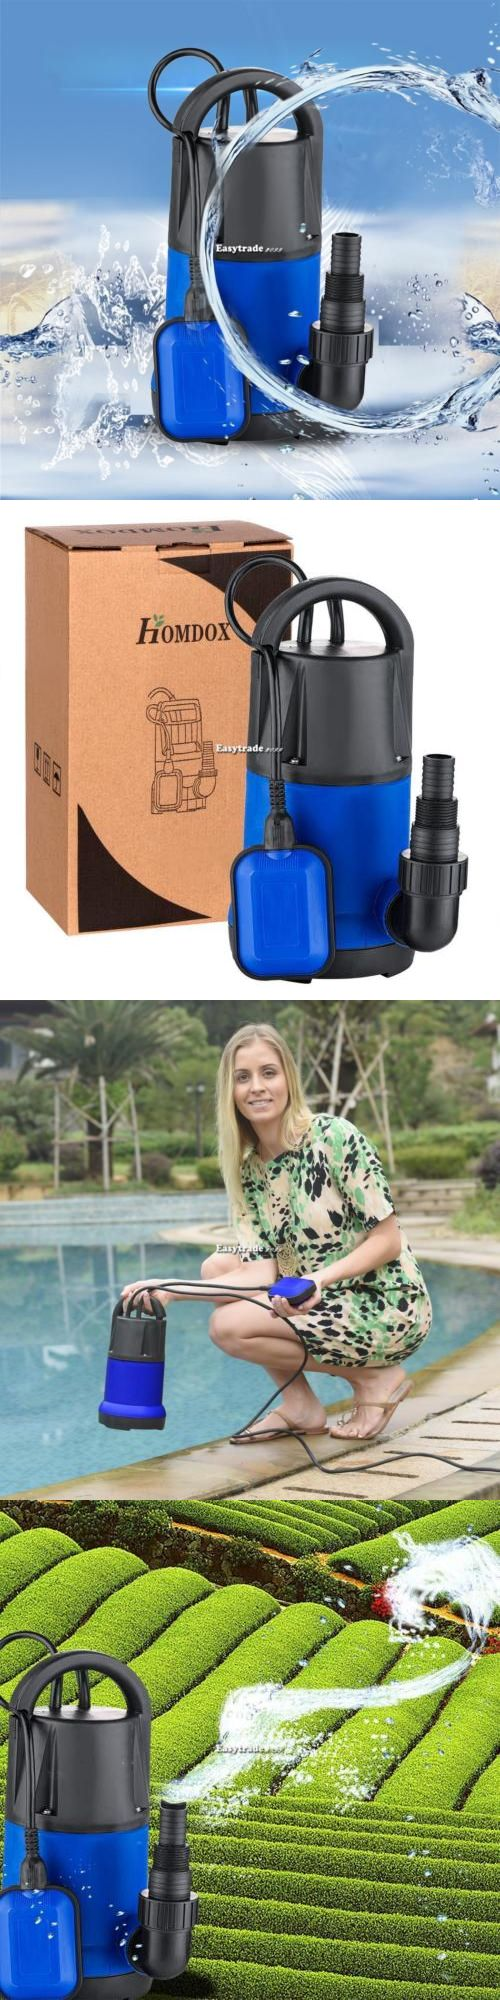 Drip Irrigation 139909: Homdox Submersible Water Pump 1100W 3400Gph Clean Dirty Pool Flood Drain Esy1 -> BUY IT NOW ONLY: $46.28 on eBay!